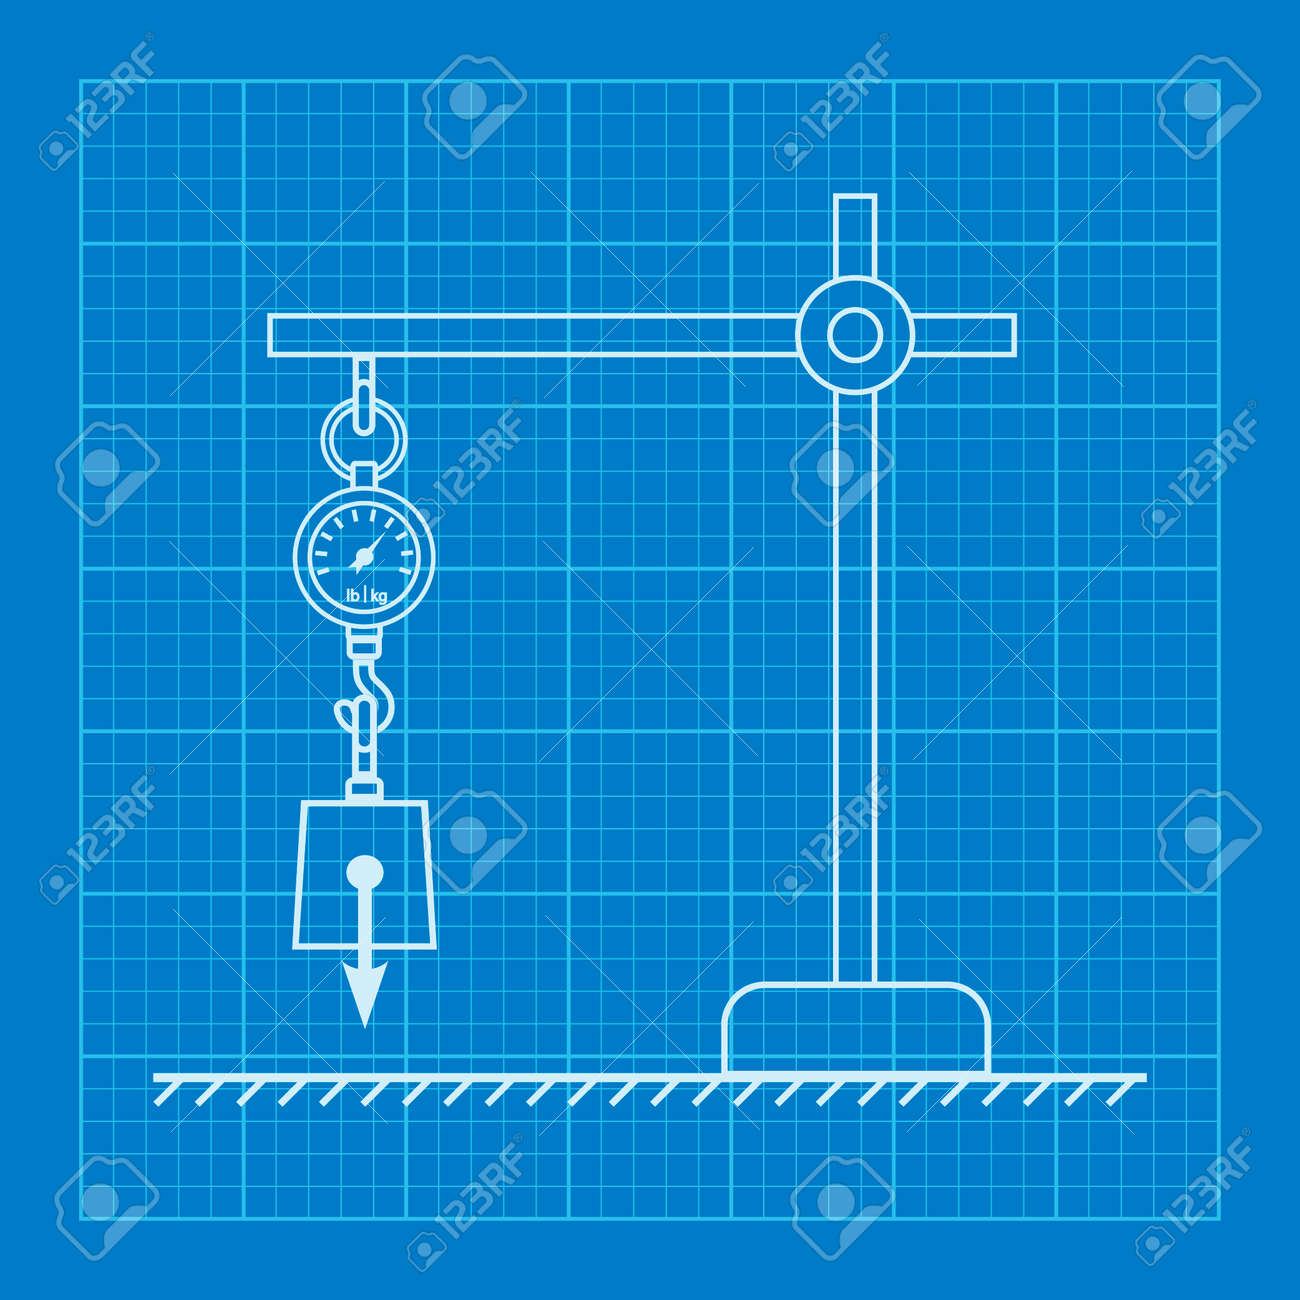 Loaded dynamometer scale physics blueprint royalty free cliparts loaded dynamometer scale physics blueprint stock vector 44024272 malvernweather Image collections